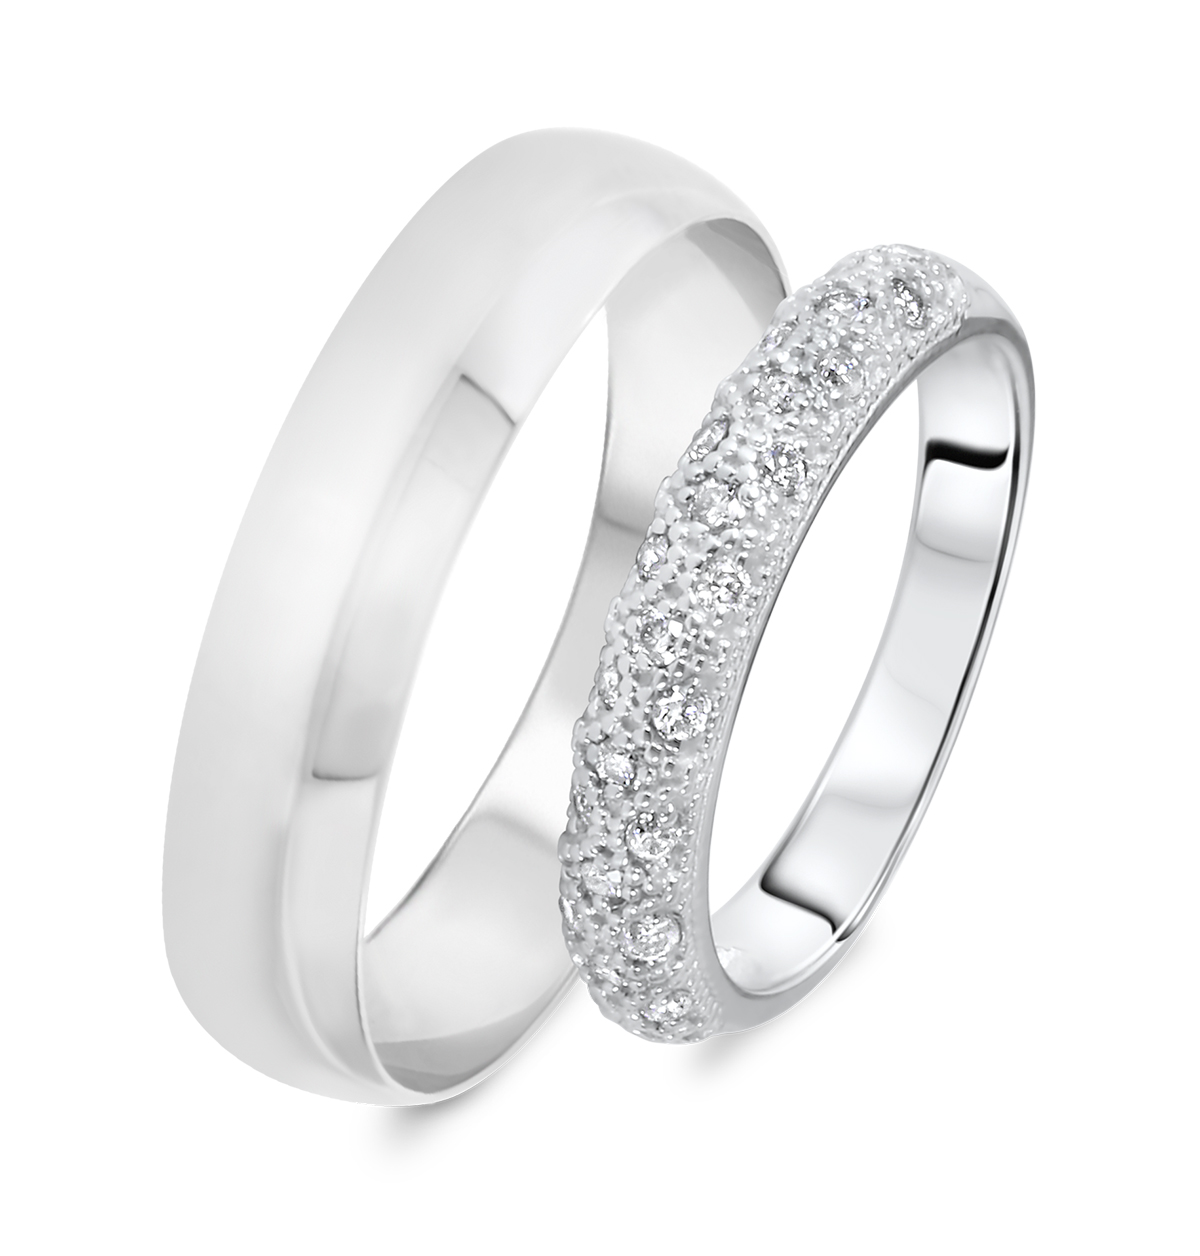 74 wedding band sets his and hers white gold his